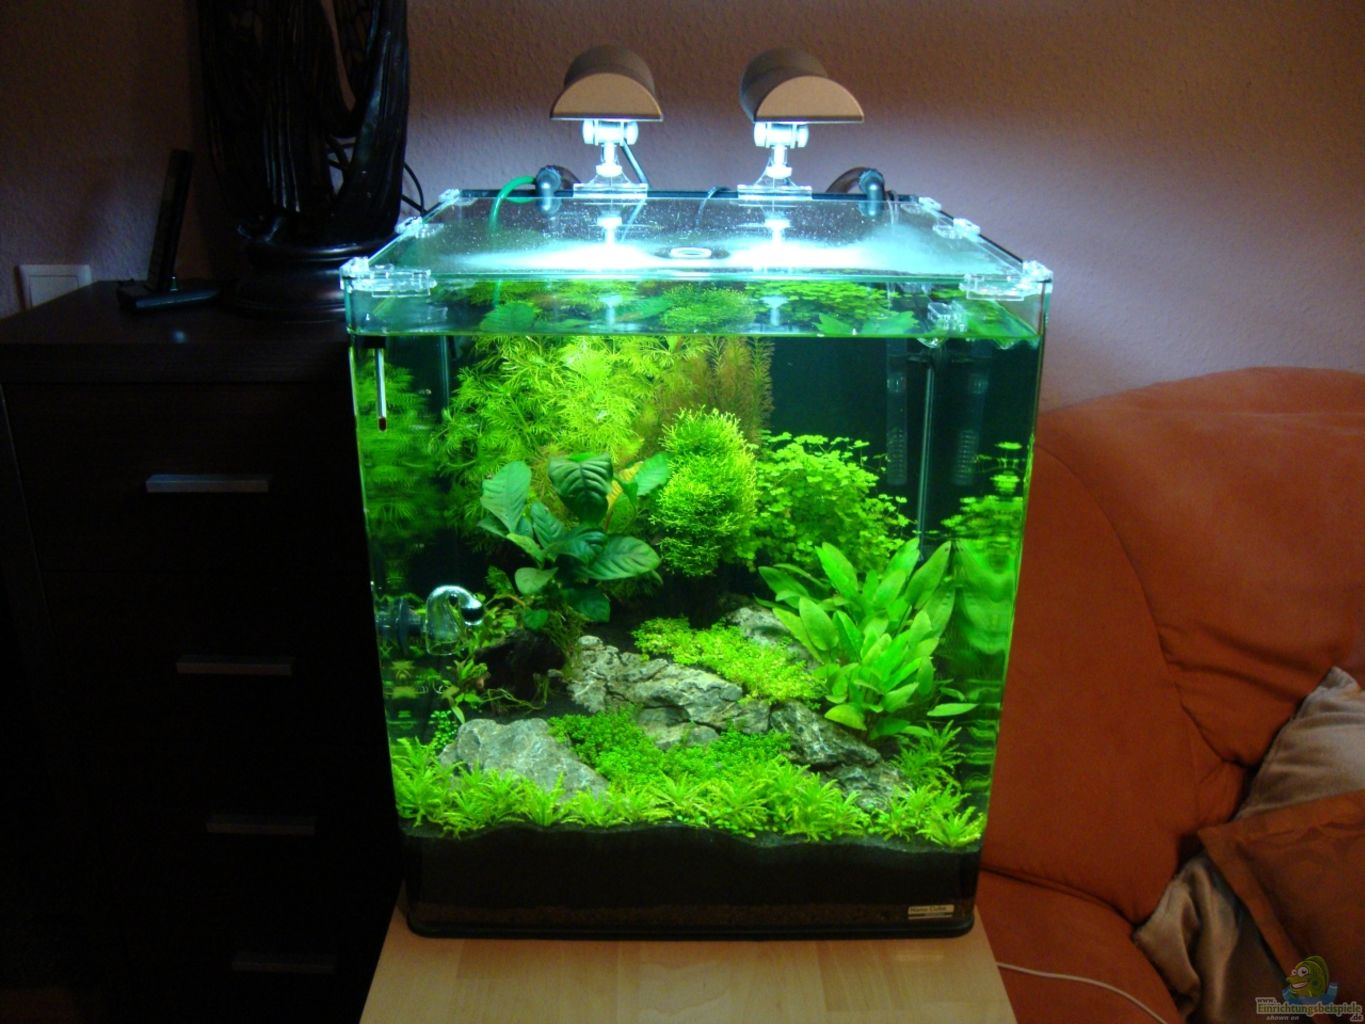 aquarium hauptansicht von nano cube 60 liter aus nano cube 60 liter von christoph luz. Black Bedroom Furniture Sets. Home Design Ideas